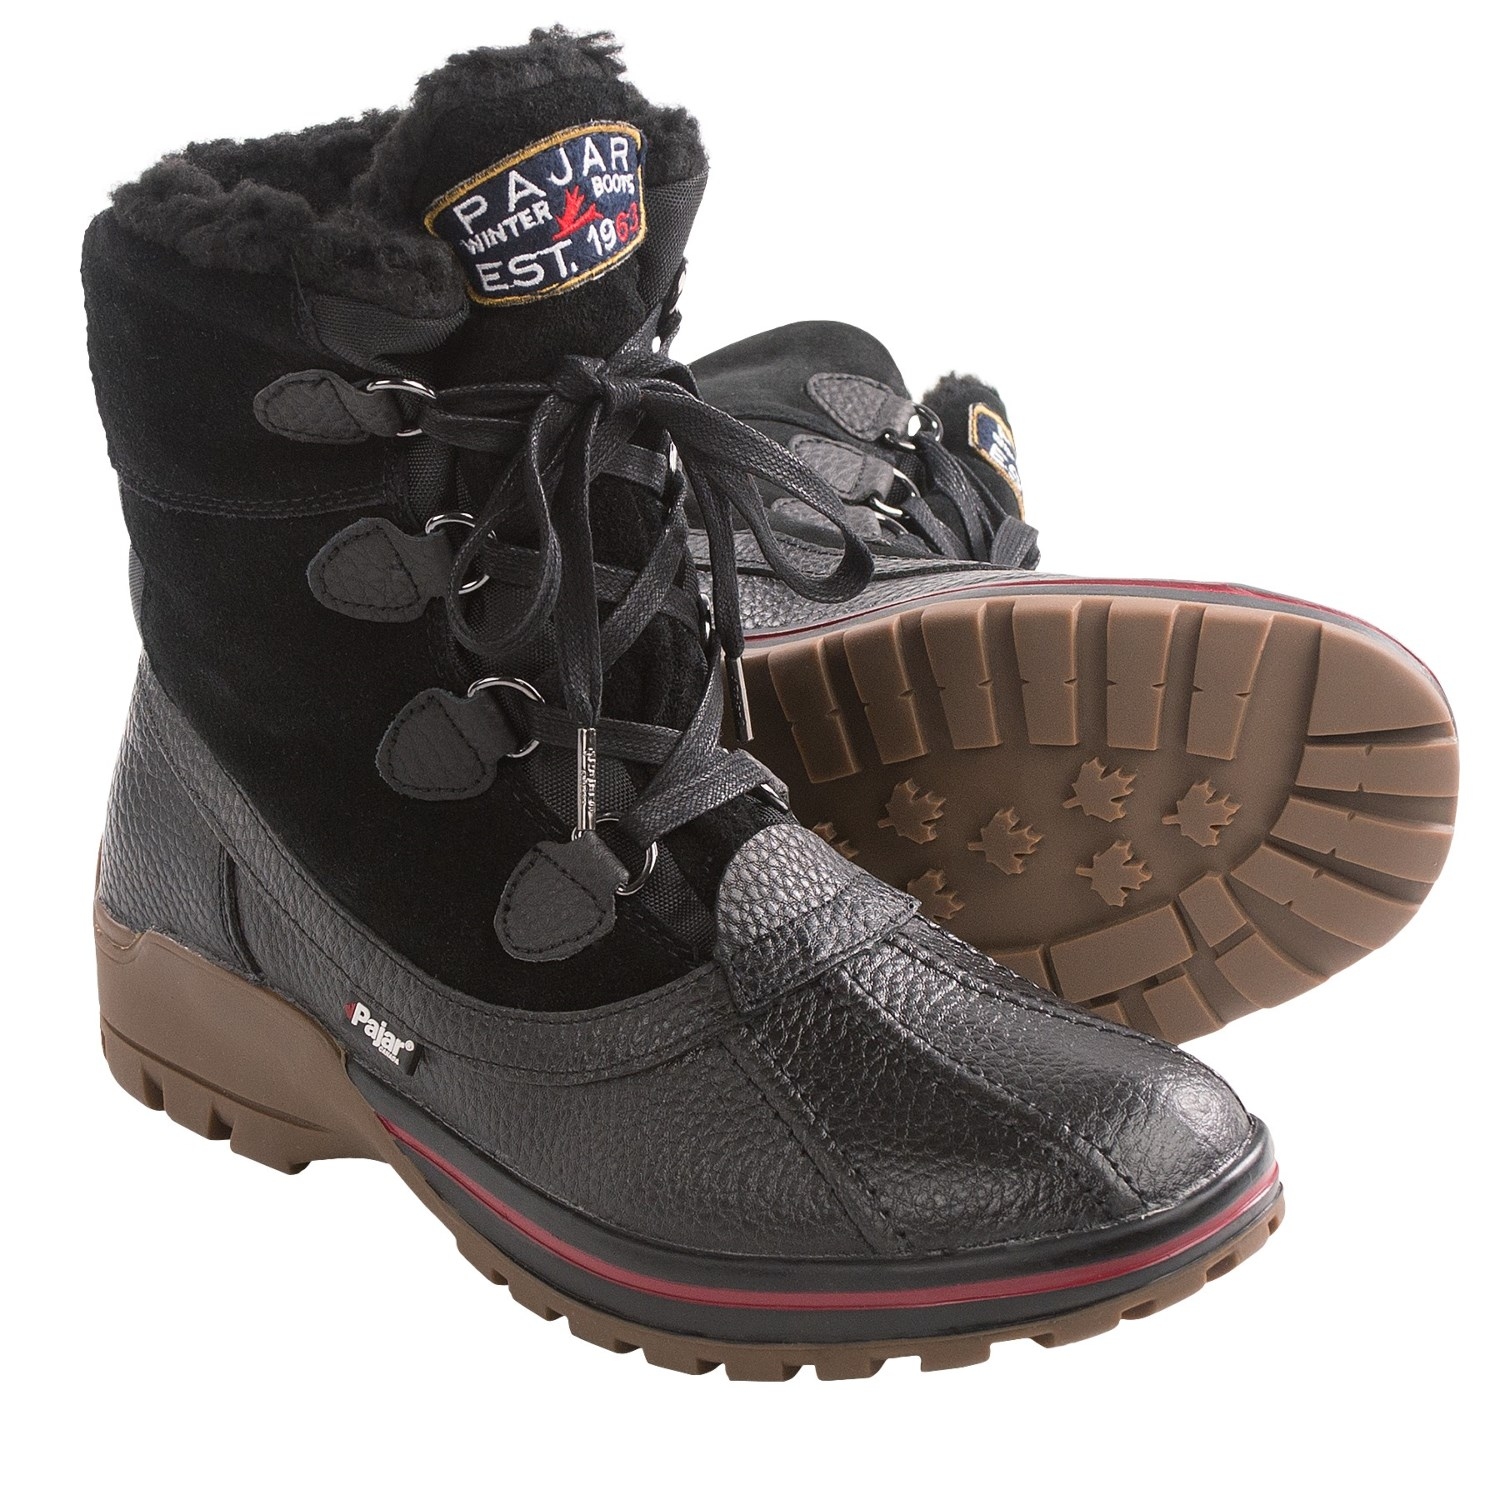 Men's Waterproof Snow Boots Clearance | Santa Barbara Institute ...